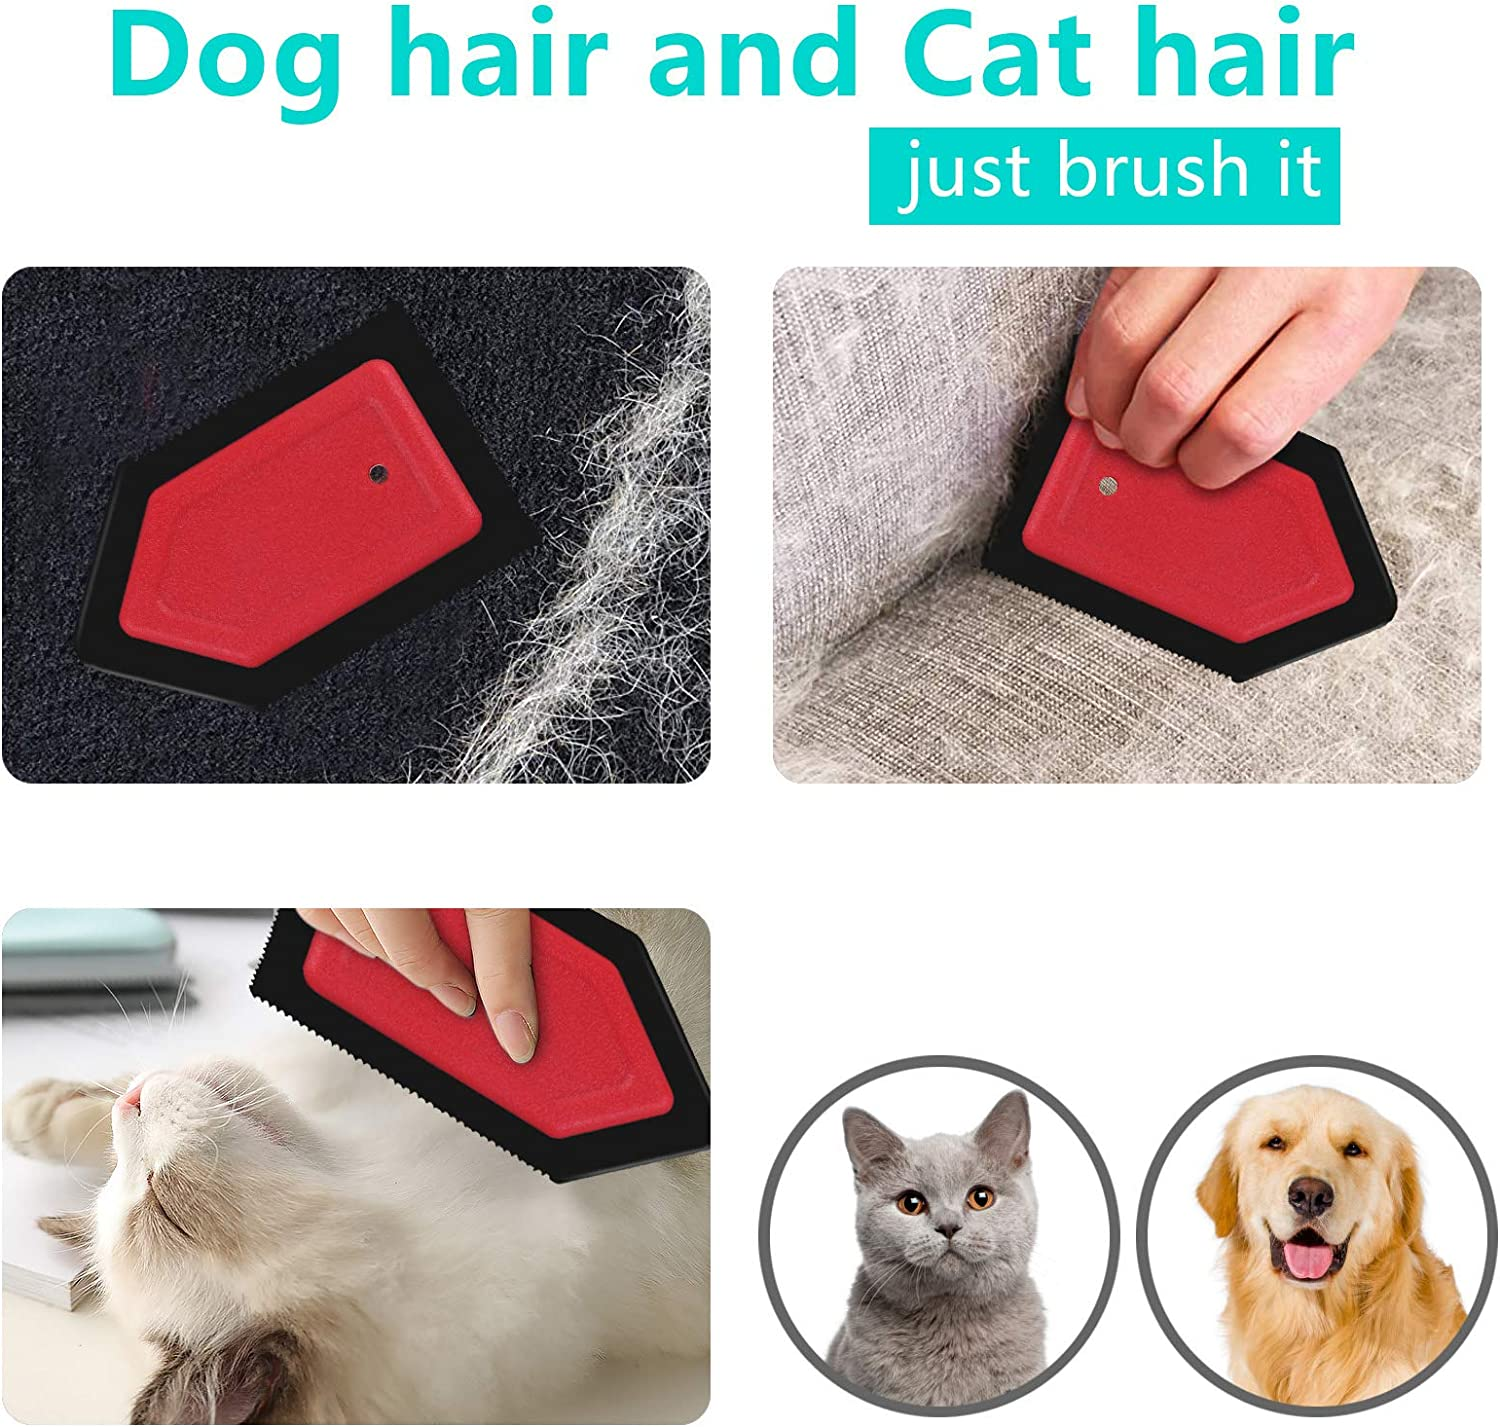 2 Pack Mini Dog Hair Remover to Clean Cat Hair Remover Car Detailing Squeegee Pet Hair Brush for Furniture Automotive SHINROAD Pet Hair Remover for Couch//Car